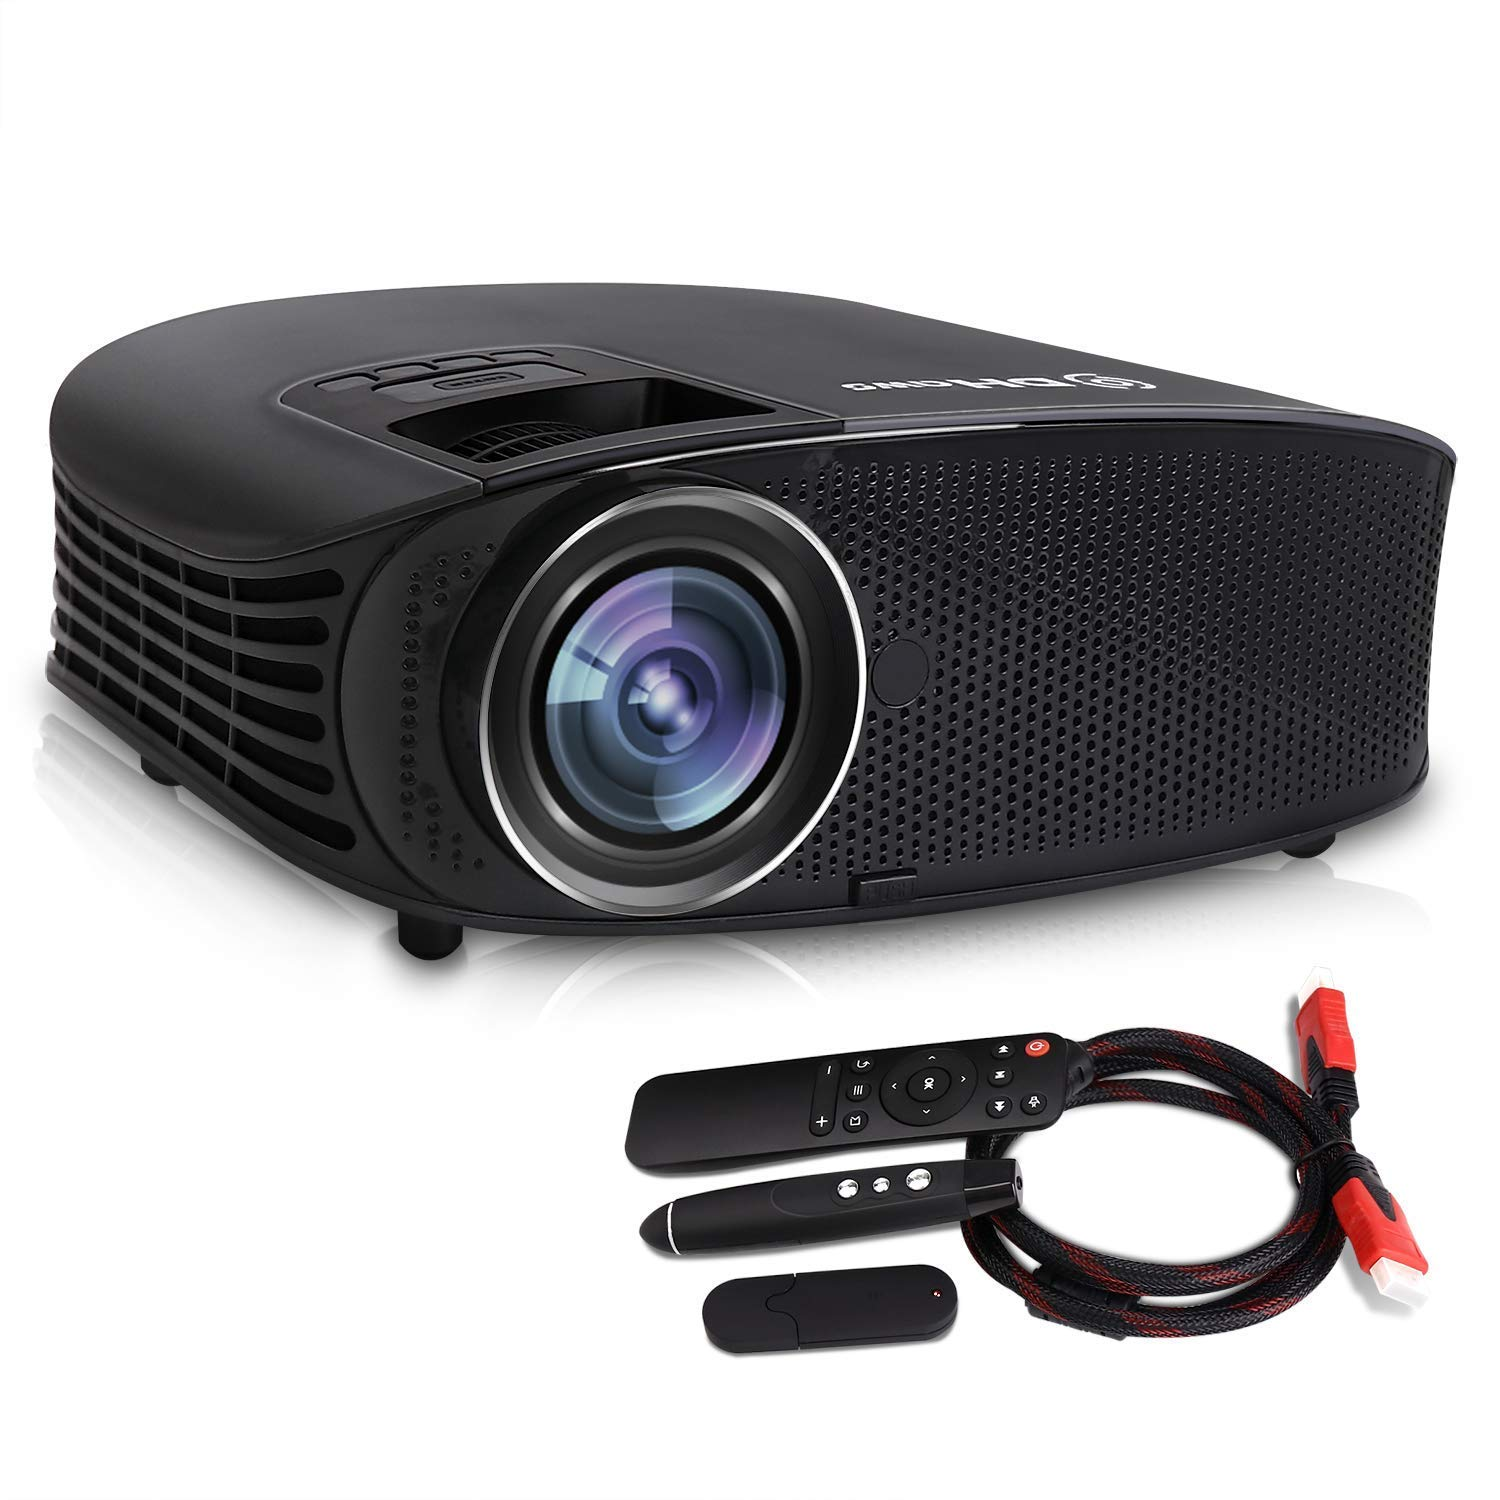 Video Projector,DHAWS 3800LM 1080P Full HD HDMI Office Projector for Laptop Business PowerPoint Presentation and Home Theater,with PPT Clicker (with PPT clicker)